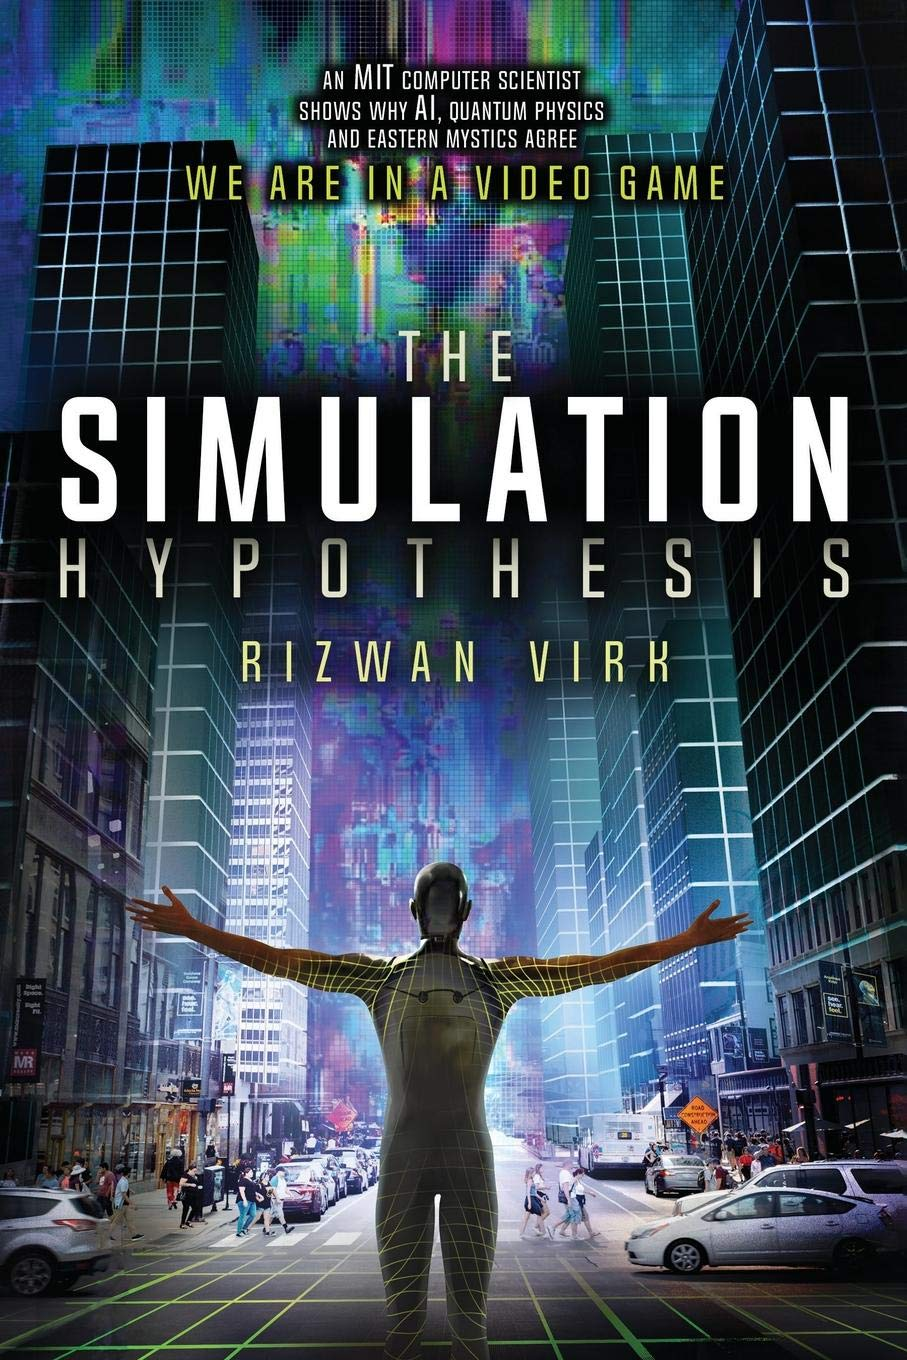 The Simulation Hypothesis: An MIT Computer Scientist Shows